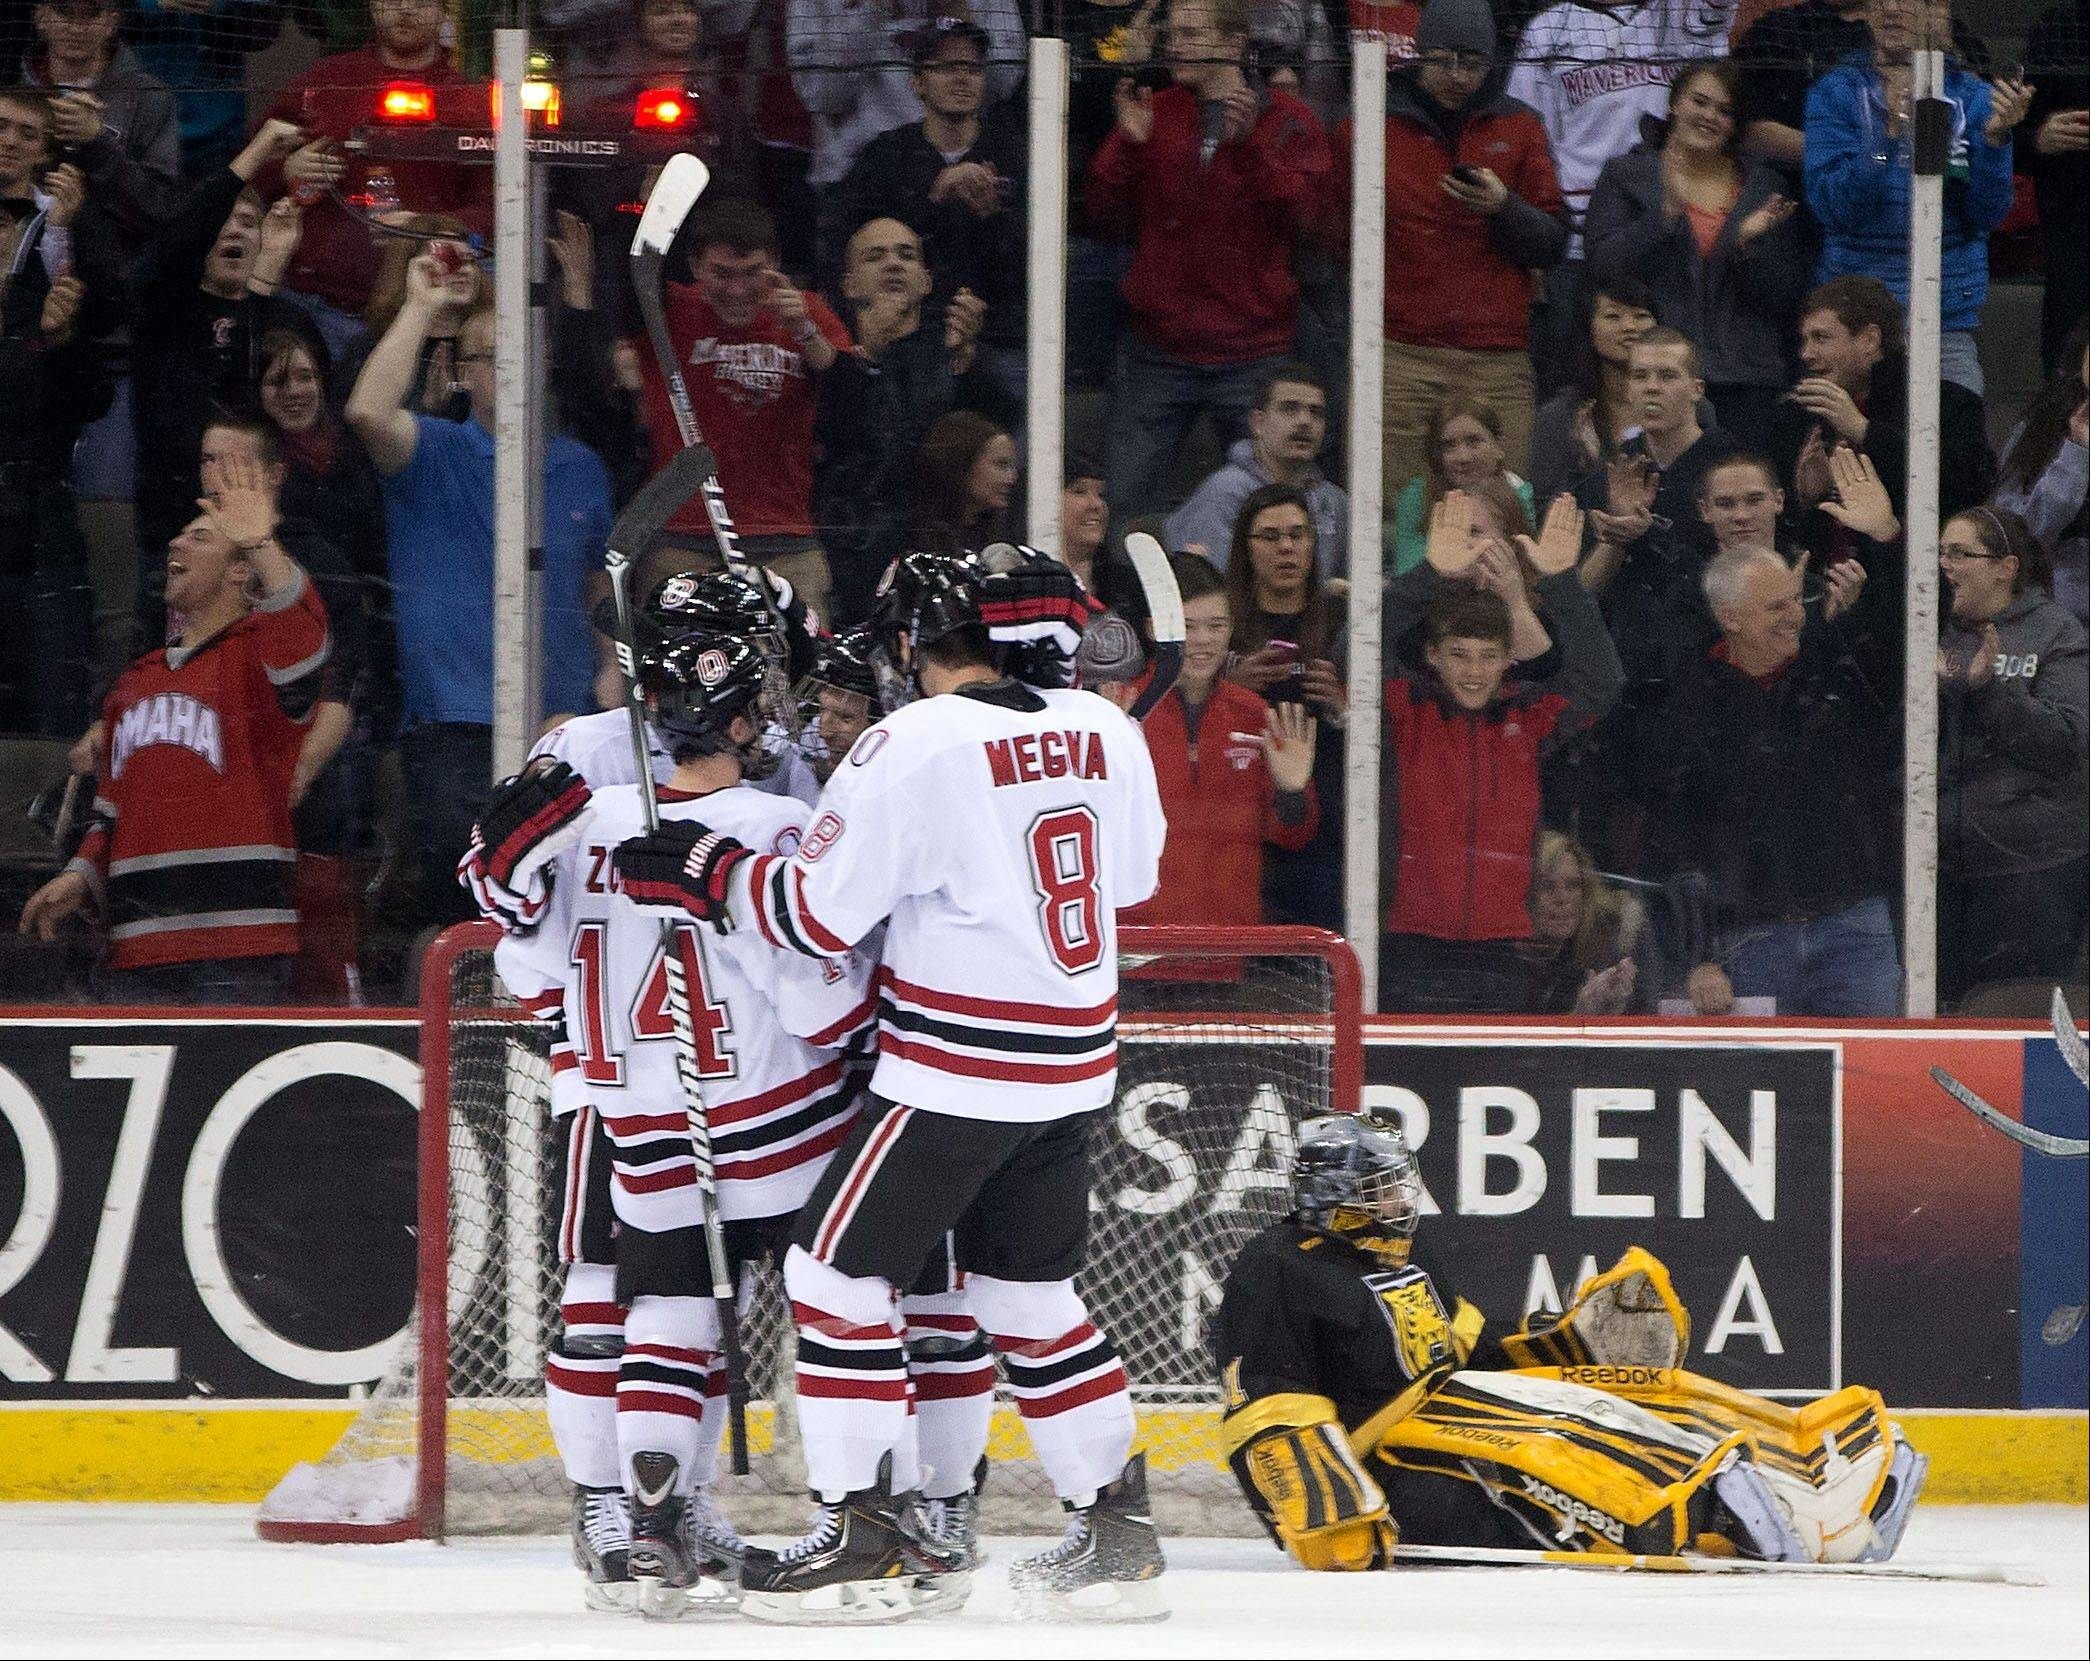 Nebraska-Omaha's Jaycob Megna (8), Dominic Zombo (14) and teammates celebrate in the third period with Josh Archibald after he scored his third goal of the night against Colorado College in a hockey game Friday, Jan. 4, 2013, in Omaha, Neb. Nebraska-Omaha won 8-4. (AP Photo/The Omaha World-Herald, Mark Davis) MAGS OUT LOCAL TV OUT